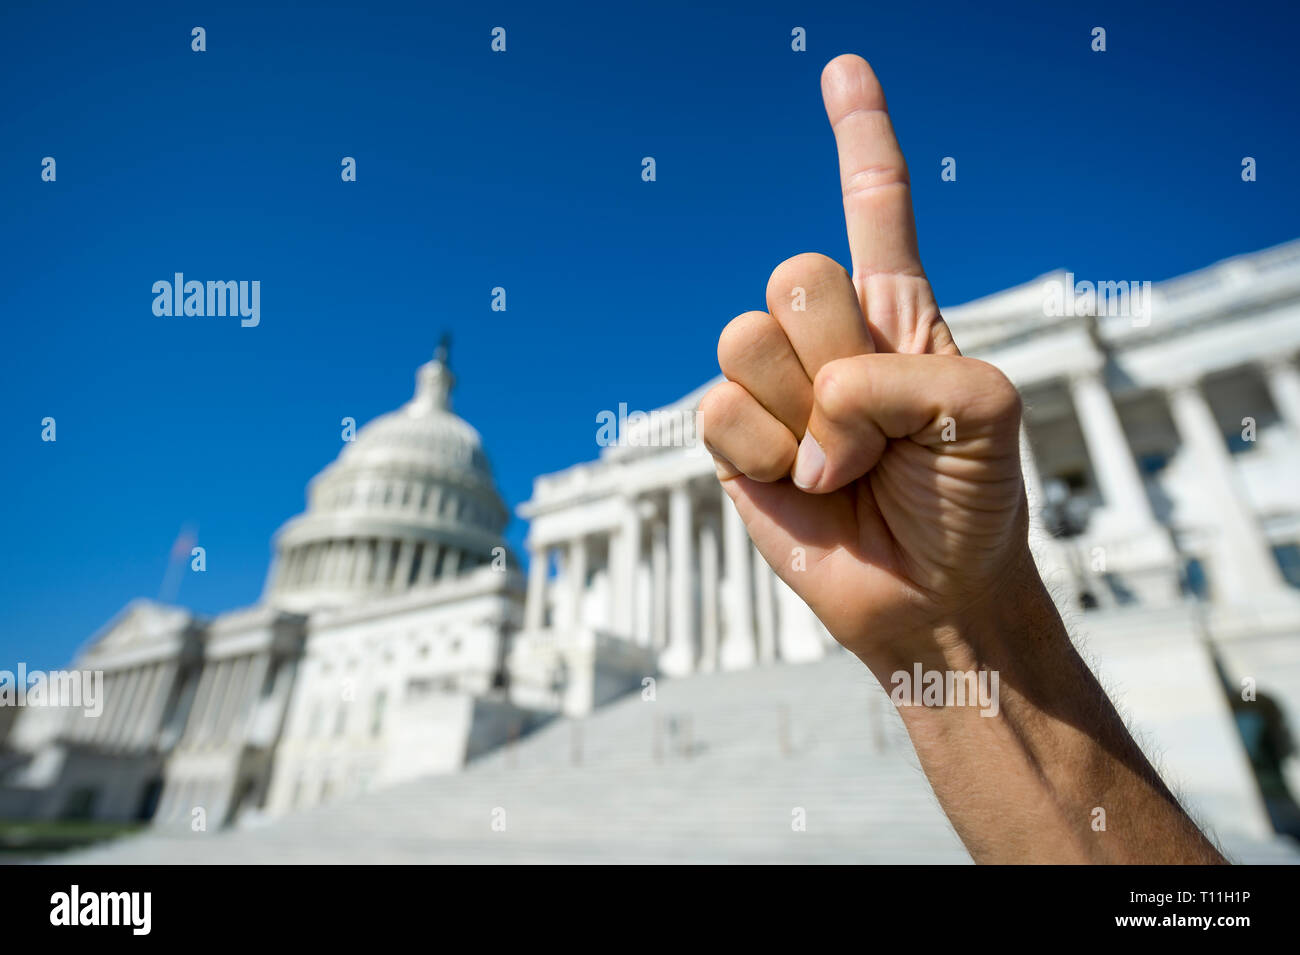 Hand of a proud America First protestor gesturing with a single index finger pointing skyward in front of the Capitol Building in Washington, DC, USA - Stock Image